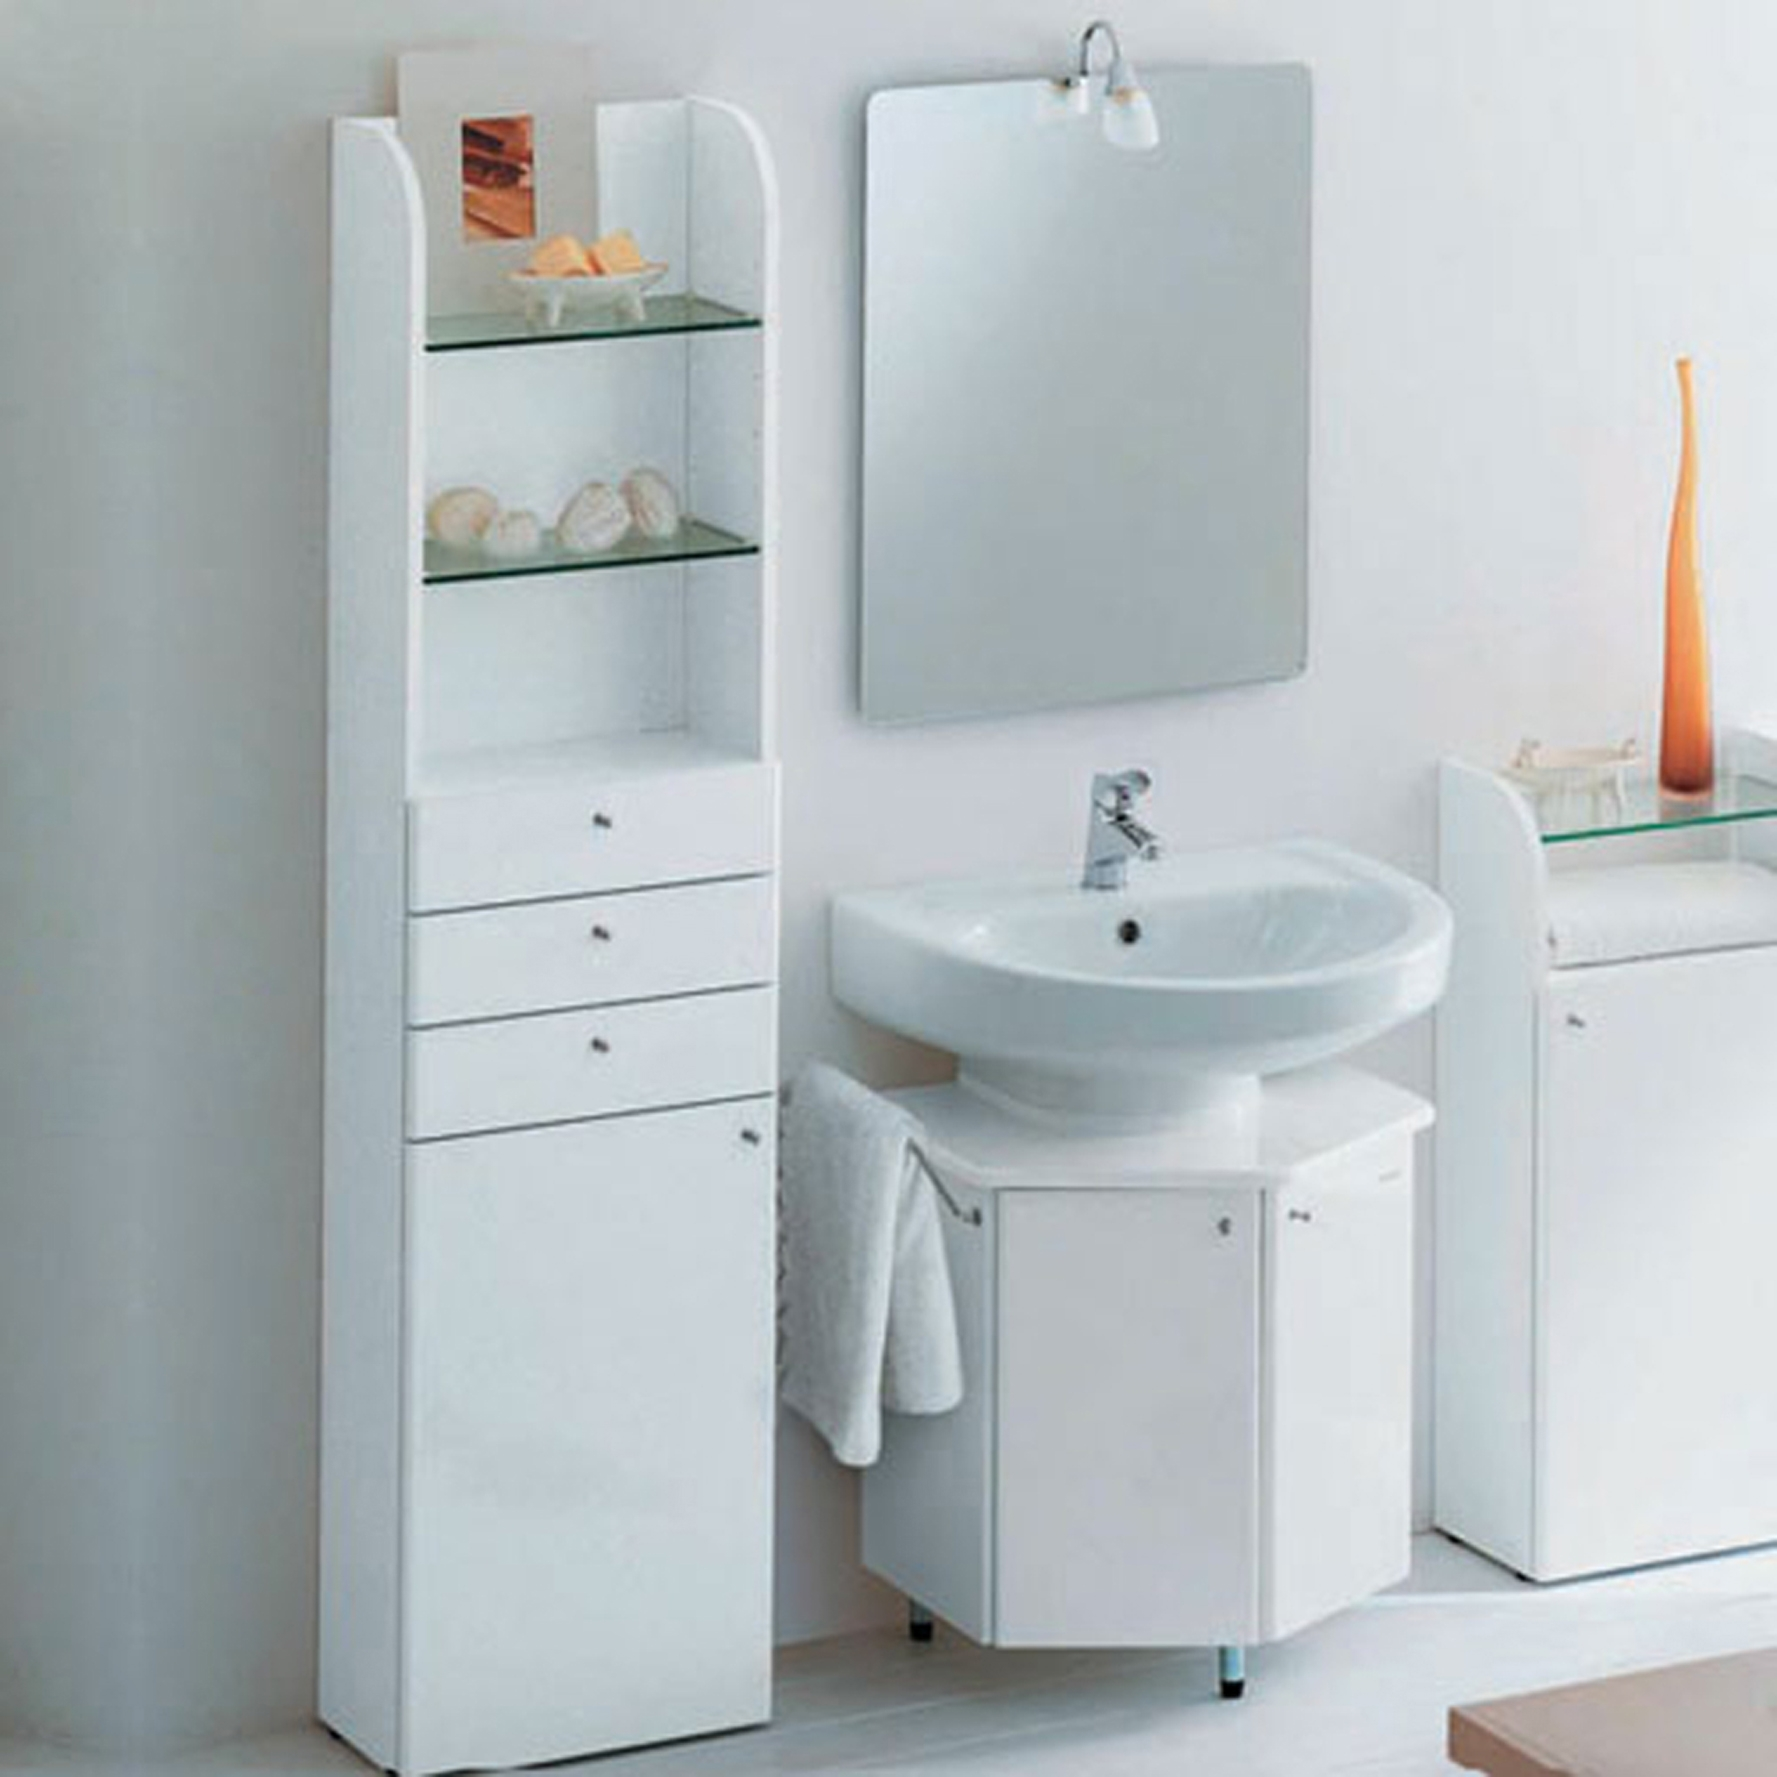 Permalink to Bathroom Floor Cabinet For Small Spaces